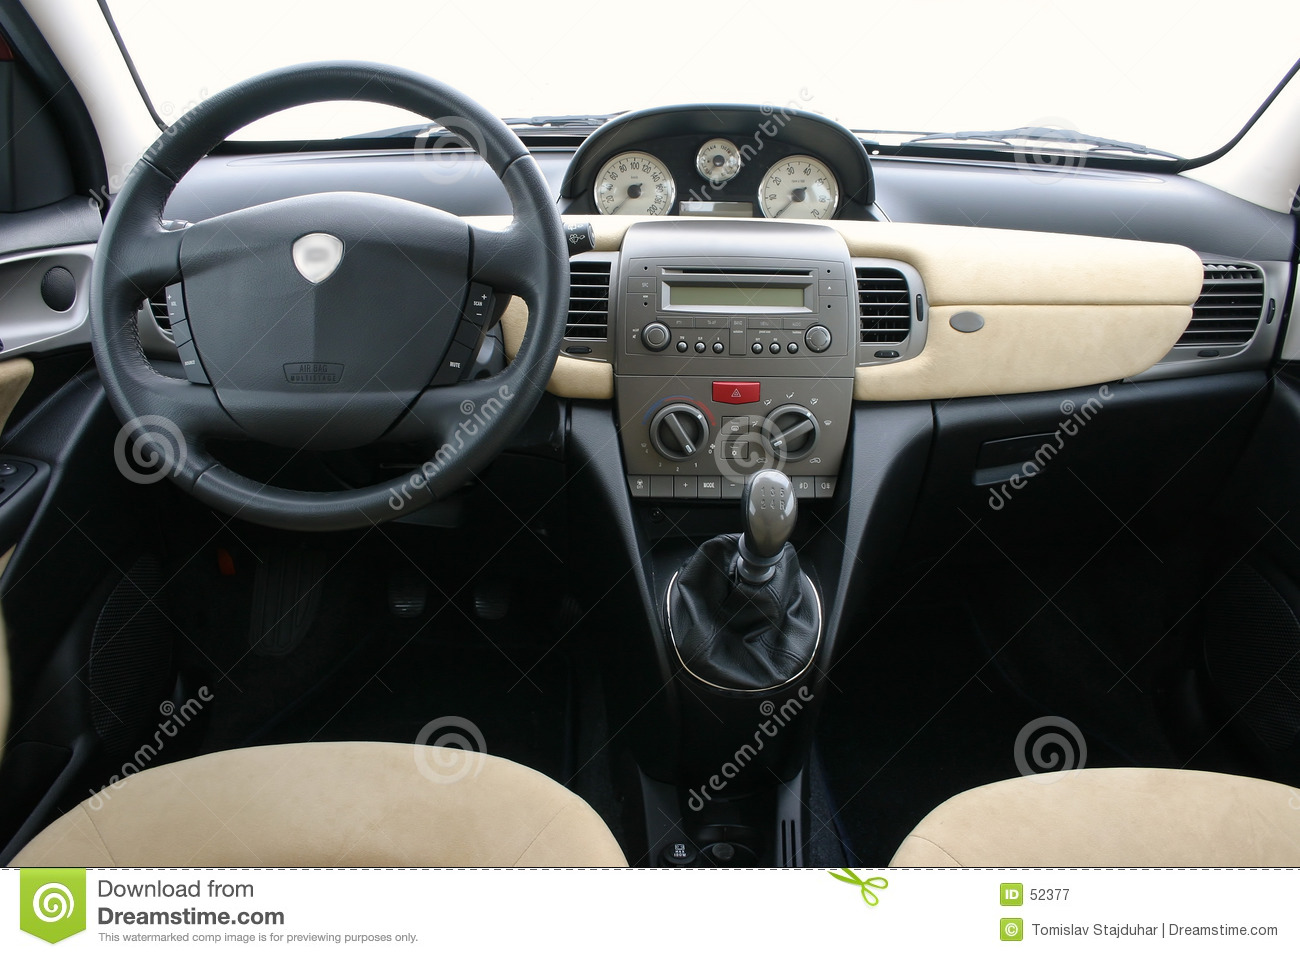 car interior diagram with Royalty Free Stock Photography Lancia Y Ypsilon Interior Image52377 on Classic Car Garage further 262042078245 also 2003 Bmw 3 Series Pictures C22259 pi10889930 further P 0996b43f8037eb1c moreover 142009864358.